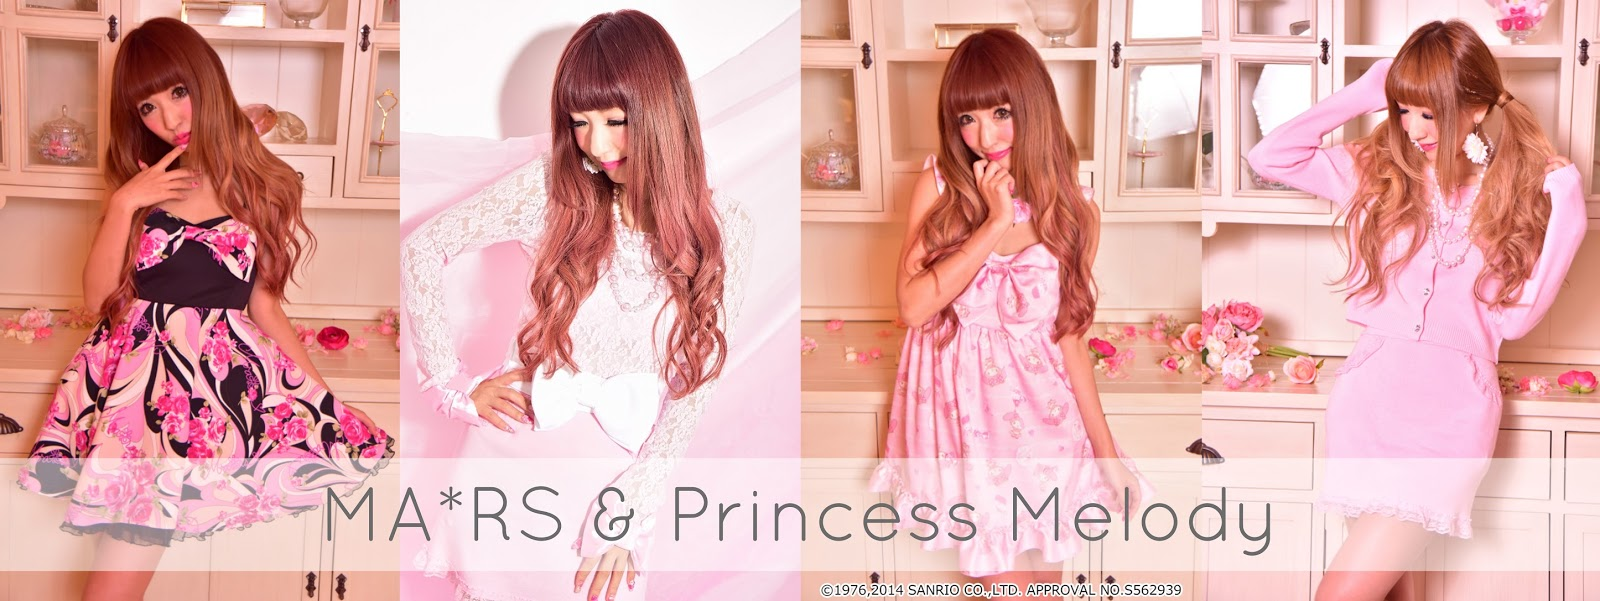 agejo hime gyaru ma*rs princess melody